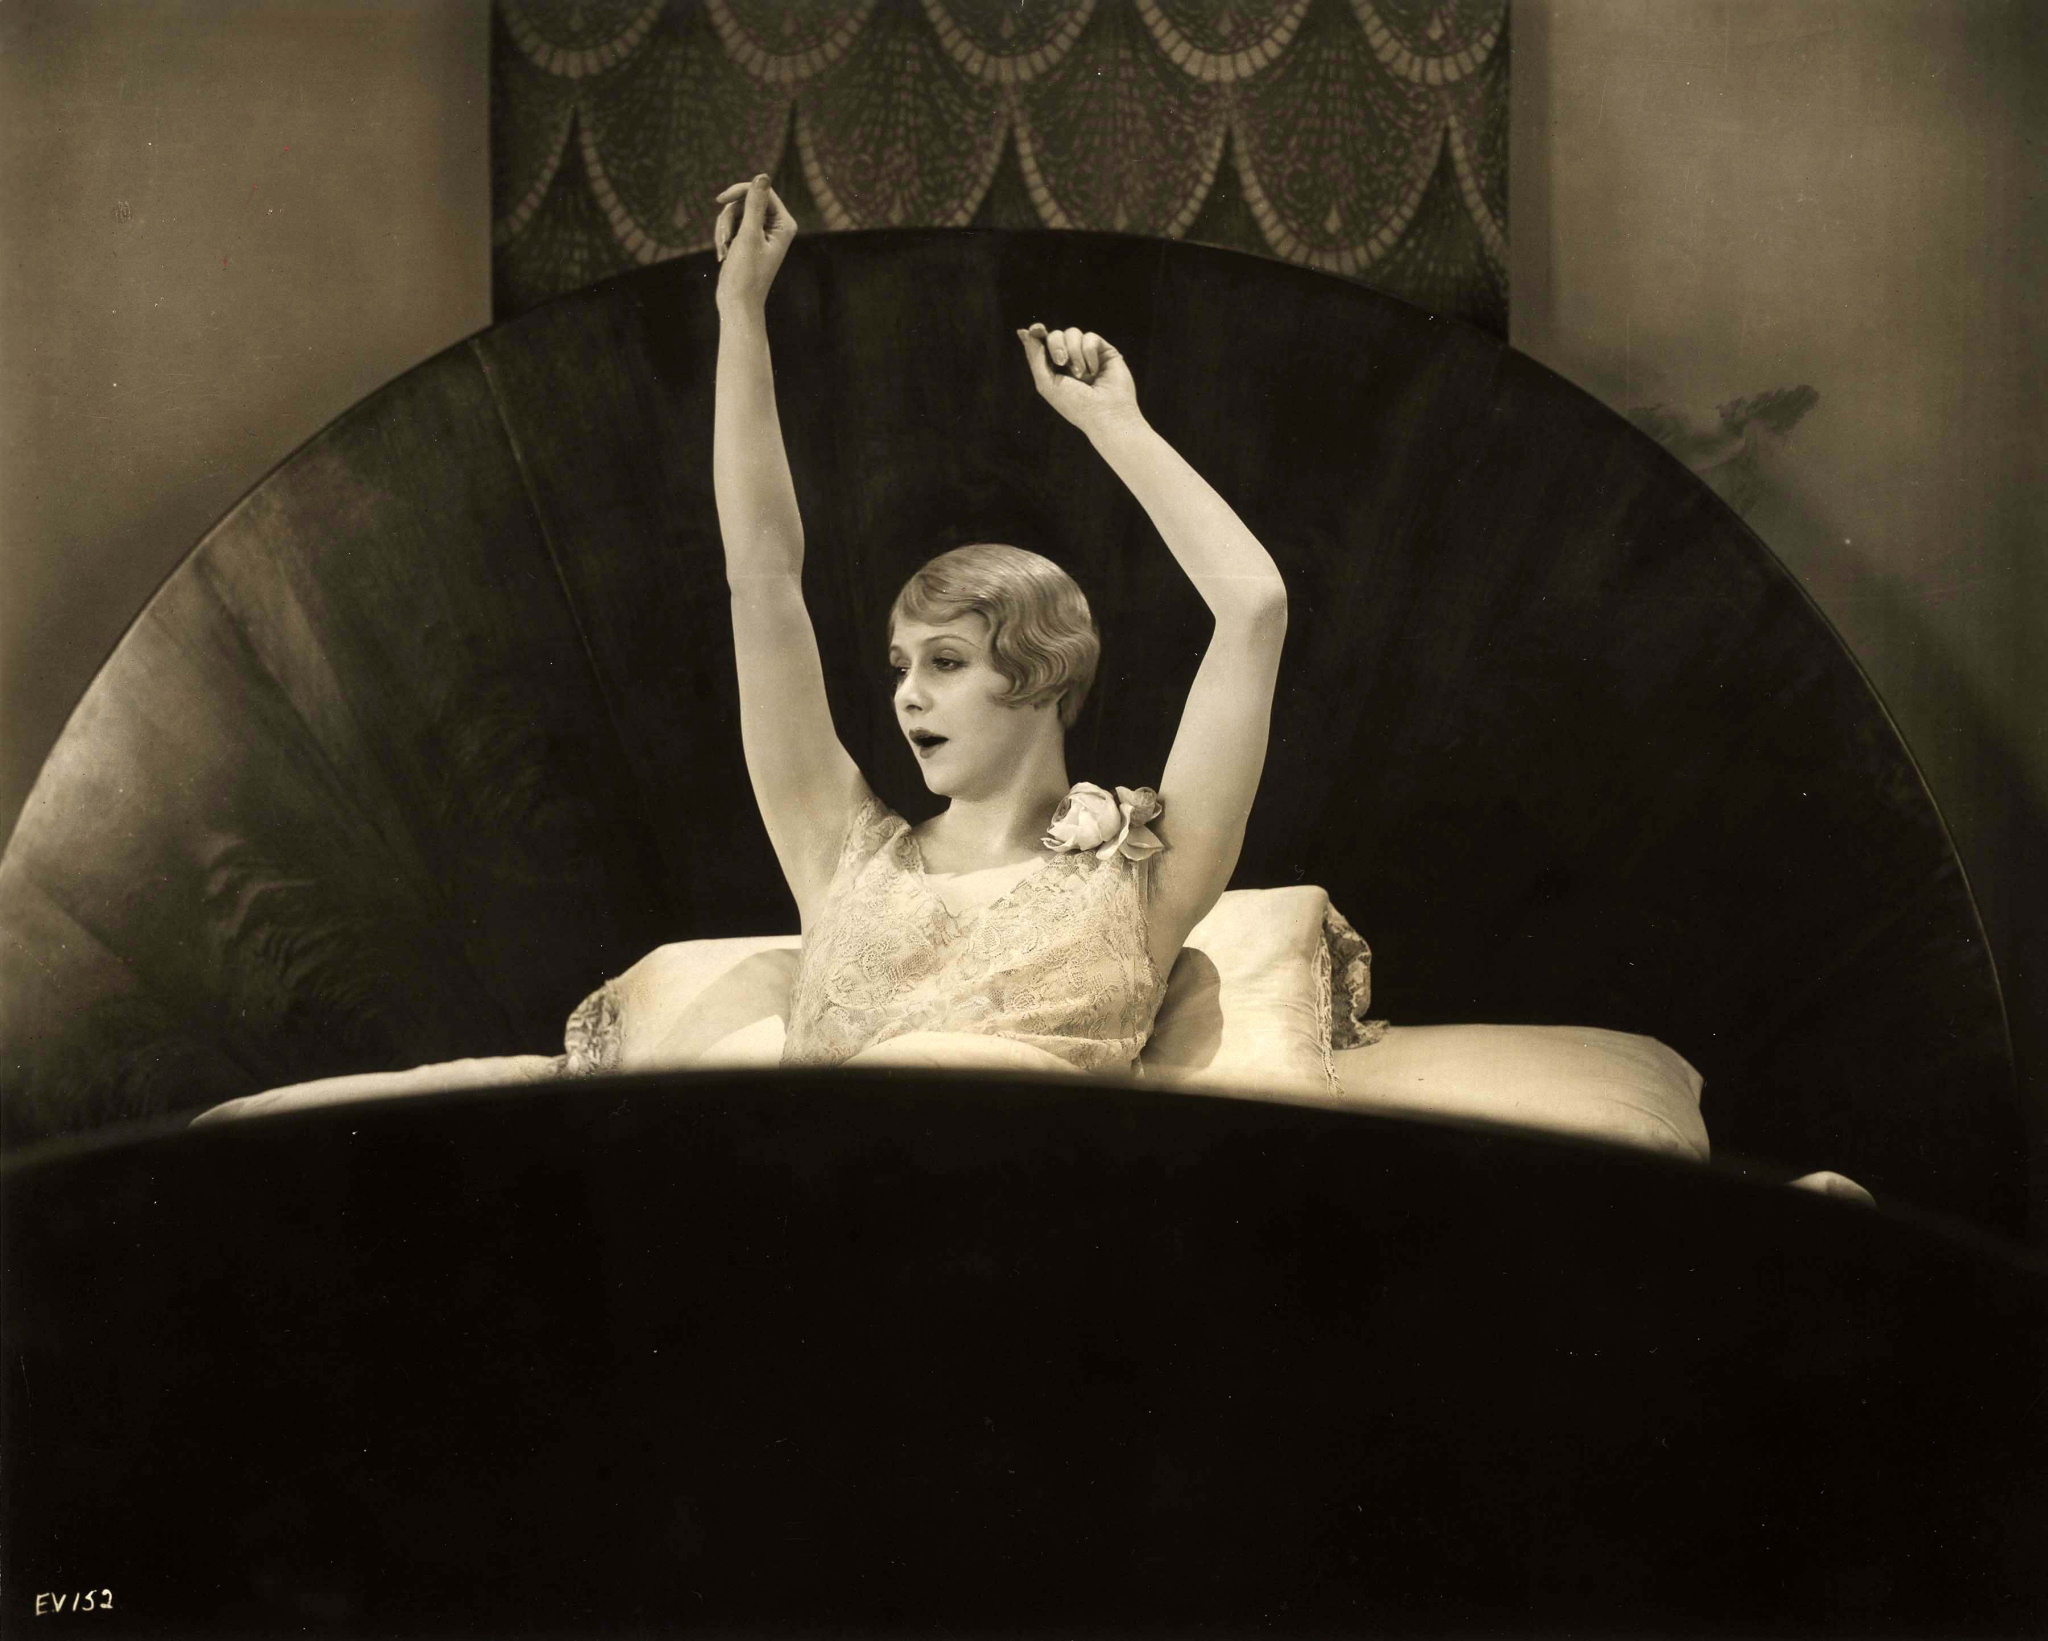 Isabel Jeans in Easy Virtue (1927, dir. Alfred Hitchcock)